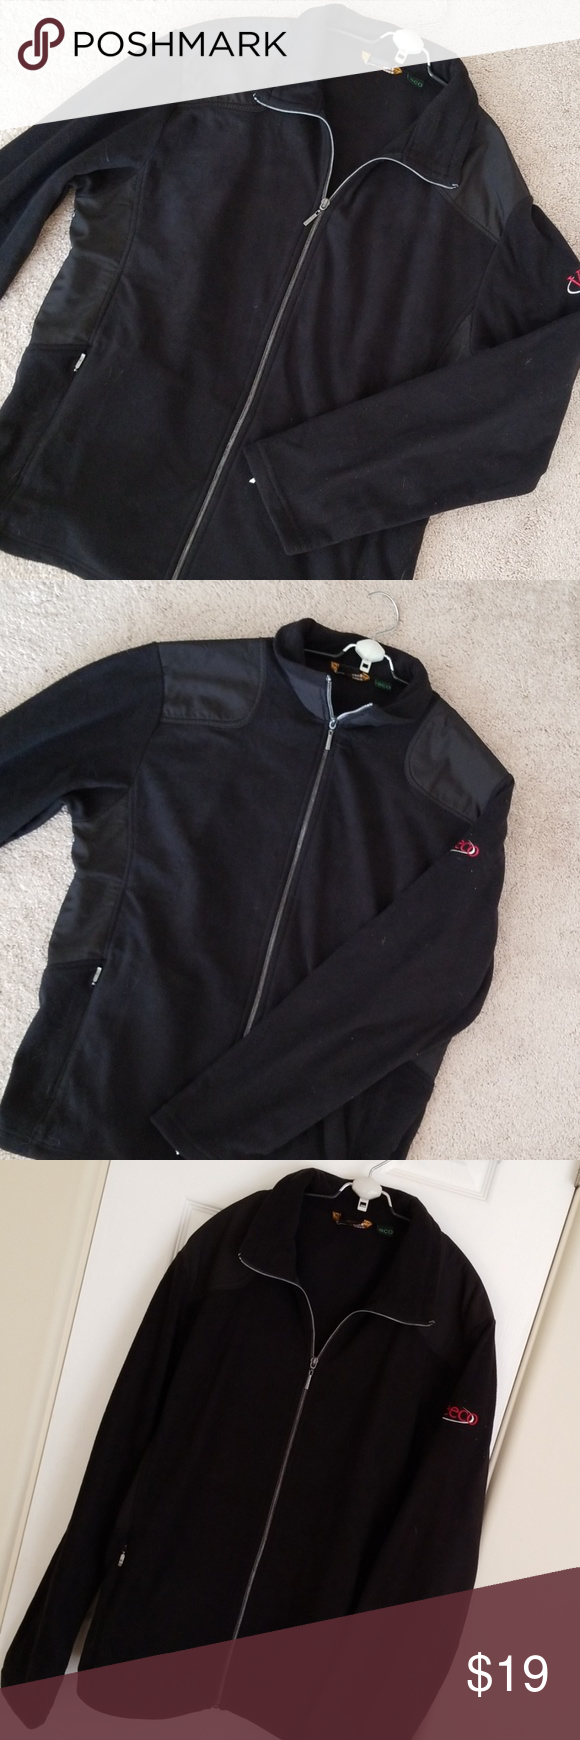 Nwot sportive jacket Fleece jacket. Wind resistant. Perfect for hiking or sports...